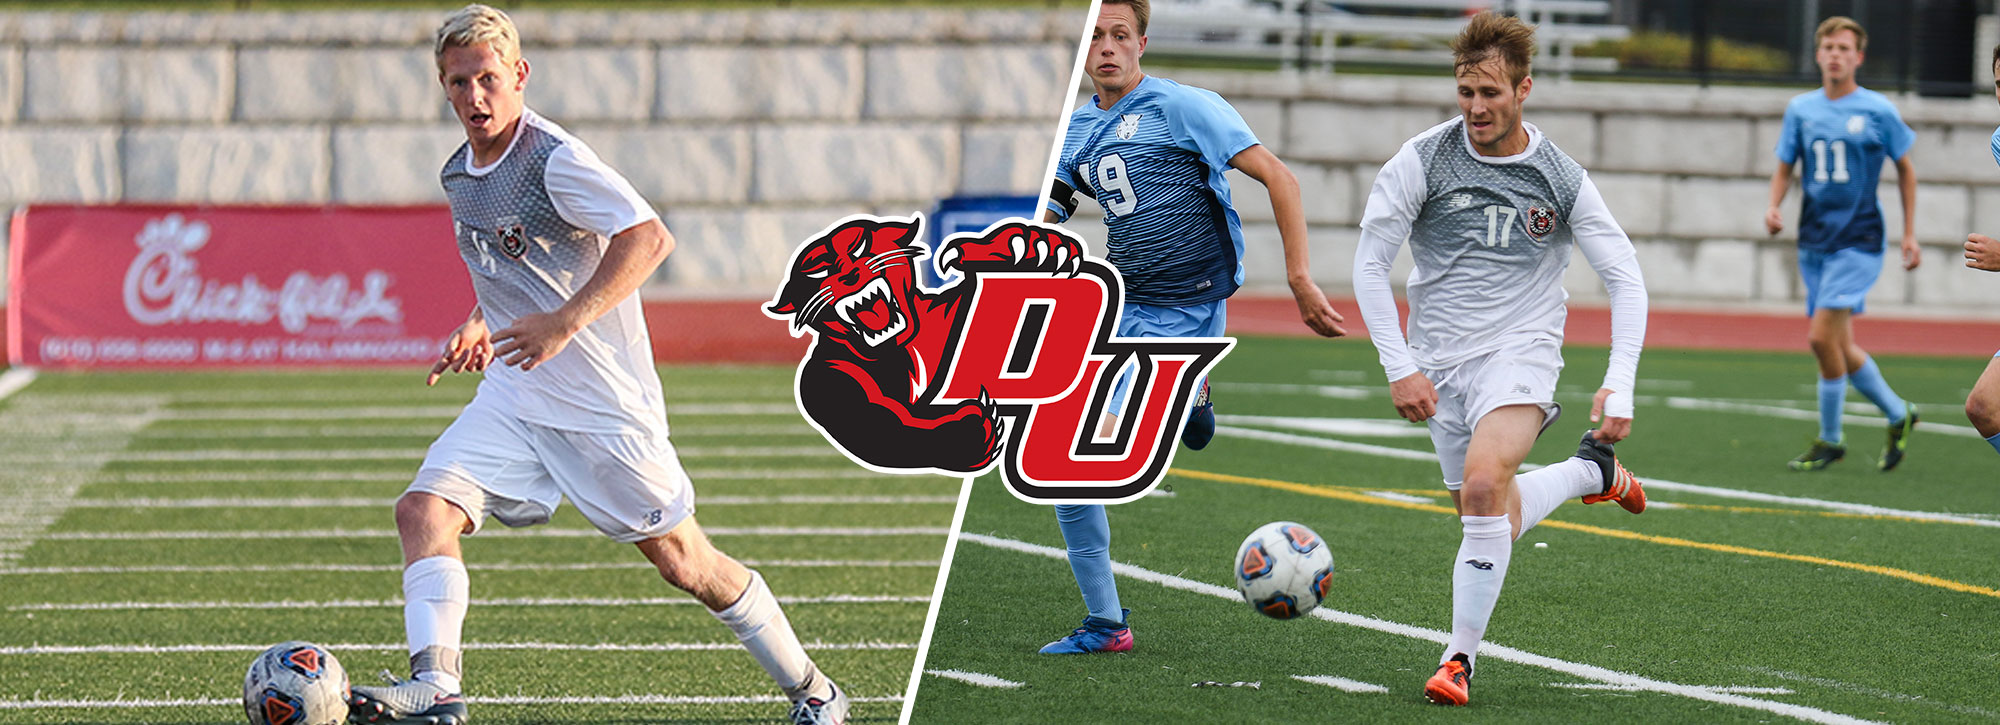 Davenport's Shrimpton, Brinks Named CoSIDA Academic All-District Selections